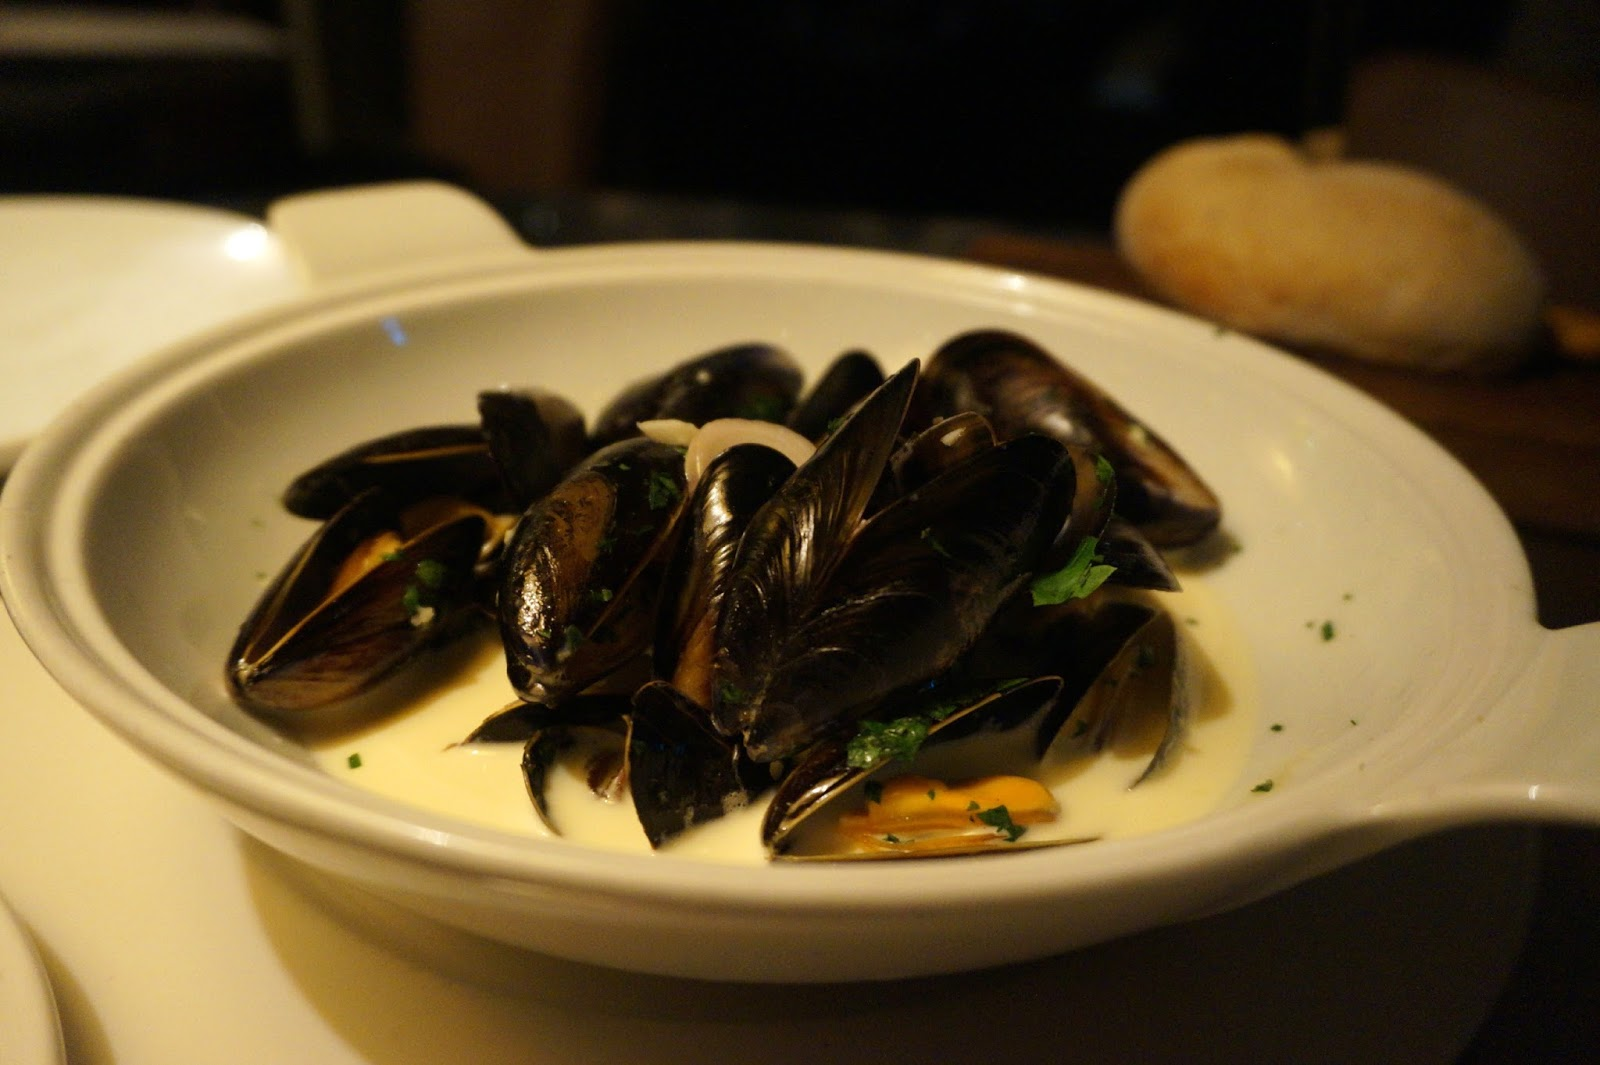 Bowl of mussells in cream sauce